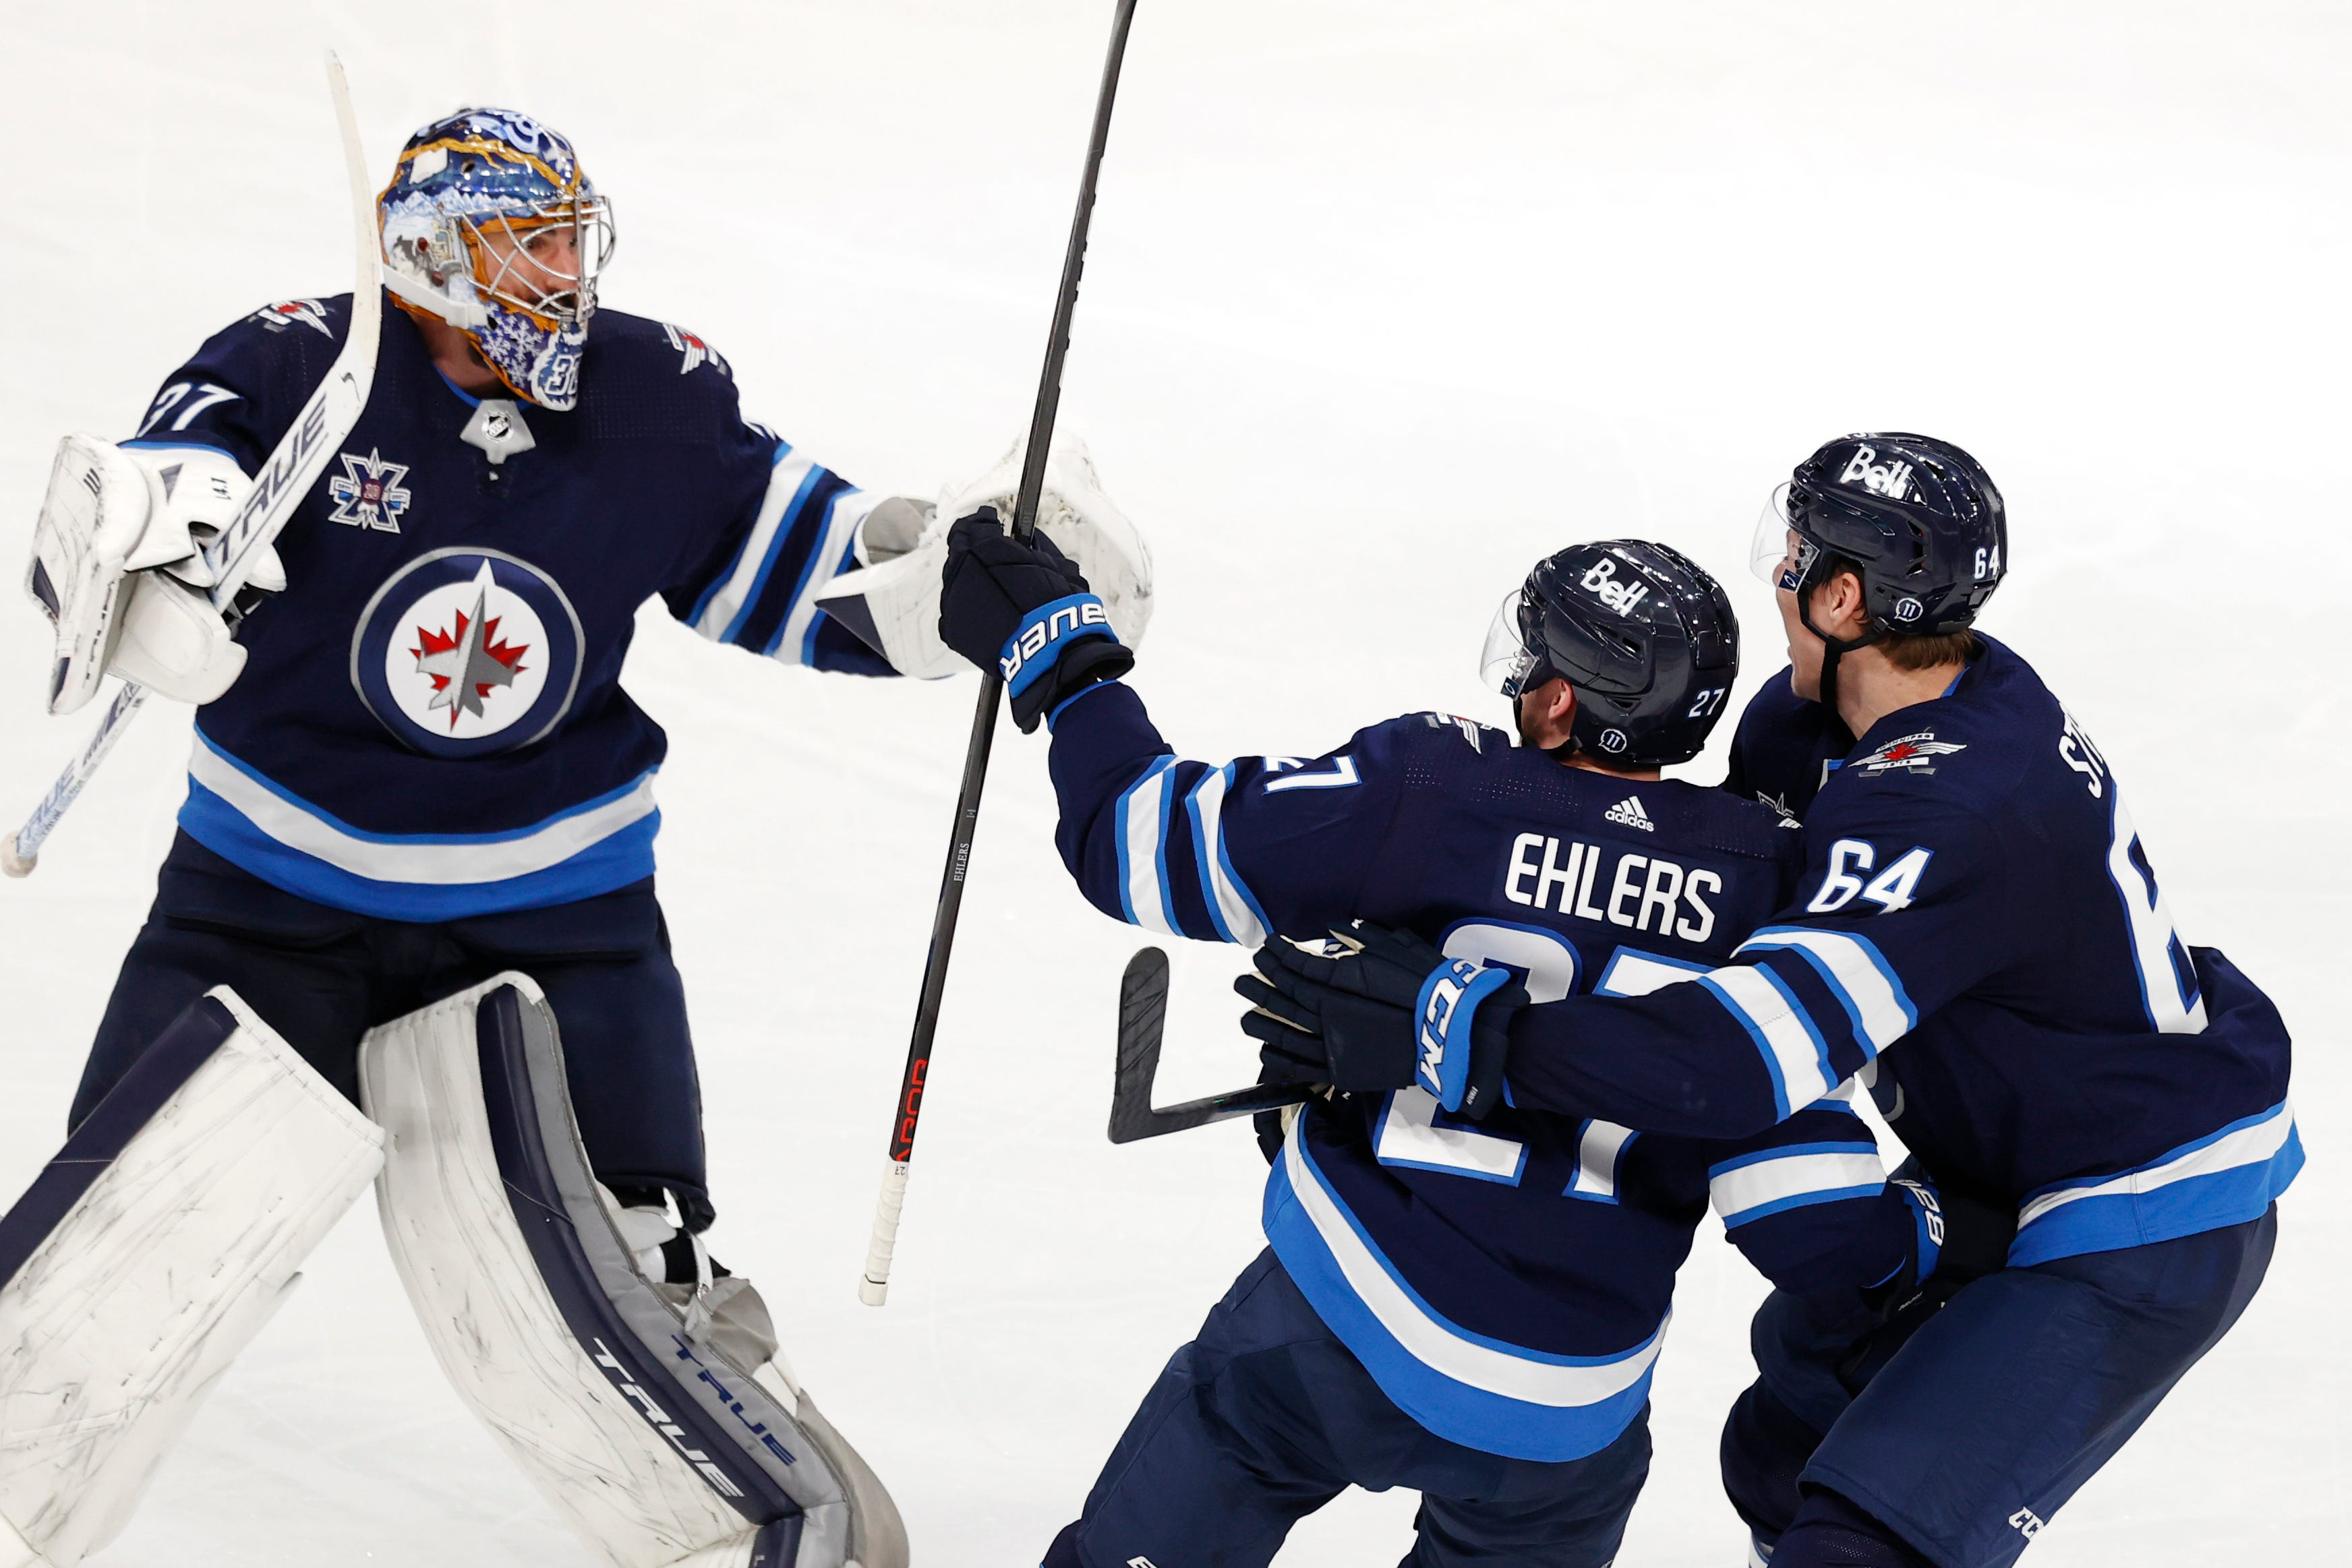 'It gave them some life': Winnipeg Jets rally for 5-4 OT win after Edmonton Oilers take 'poor penalty'